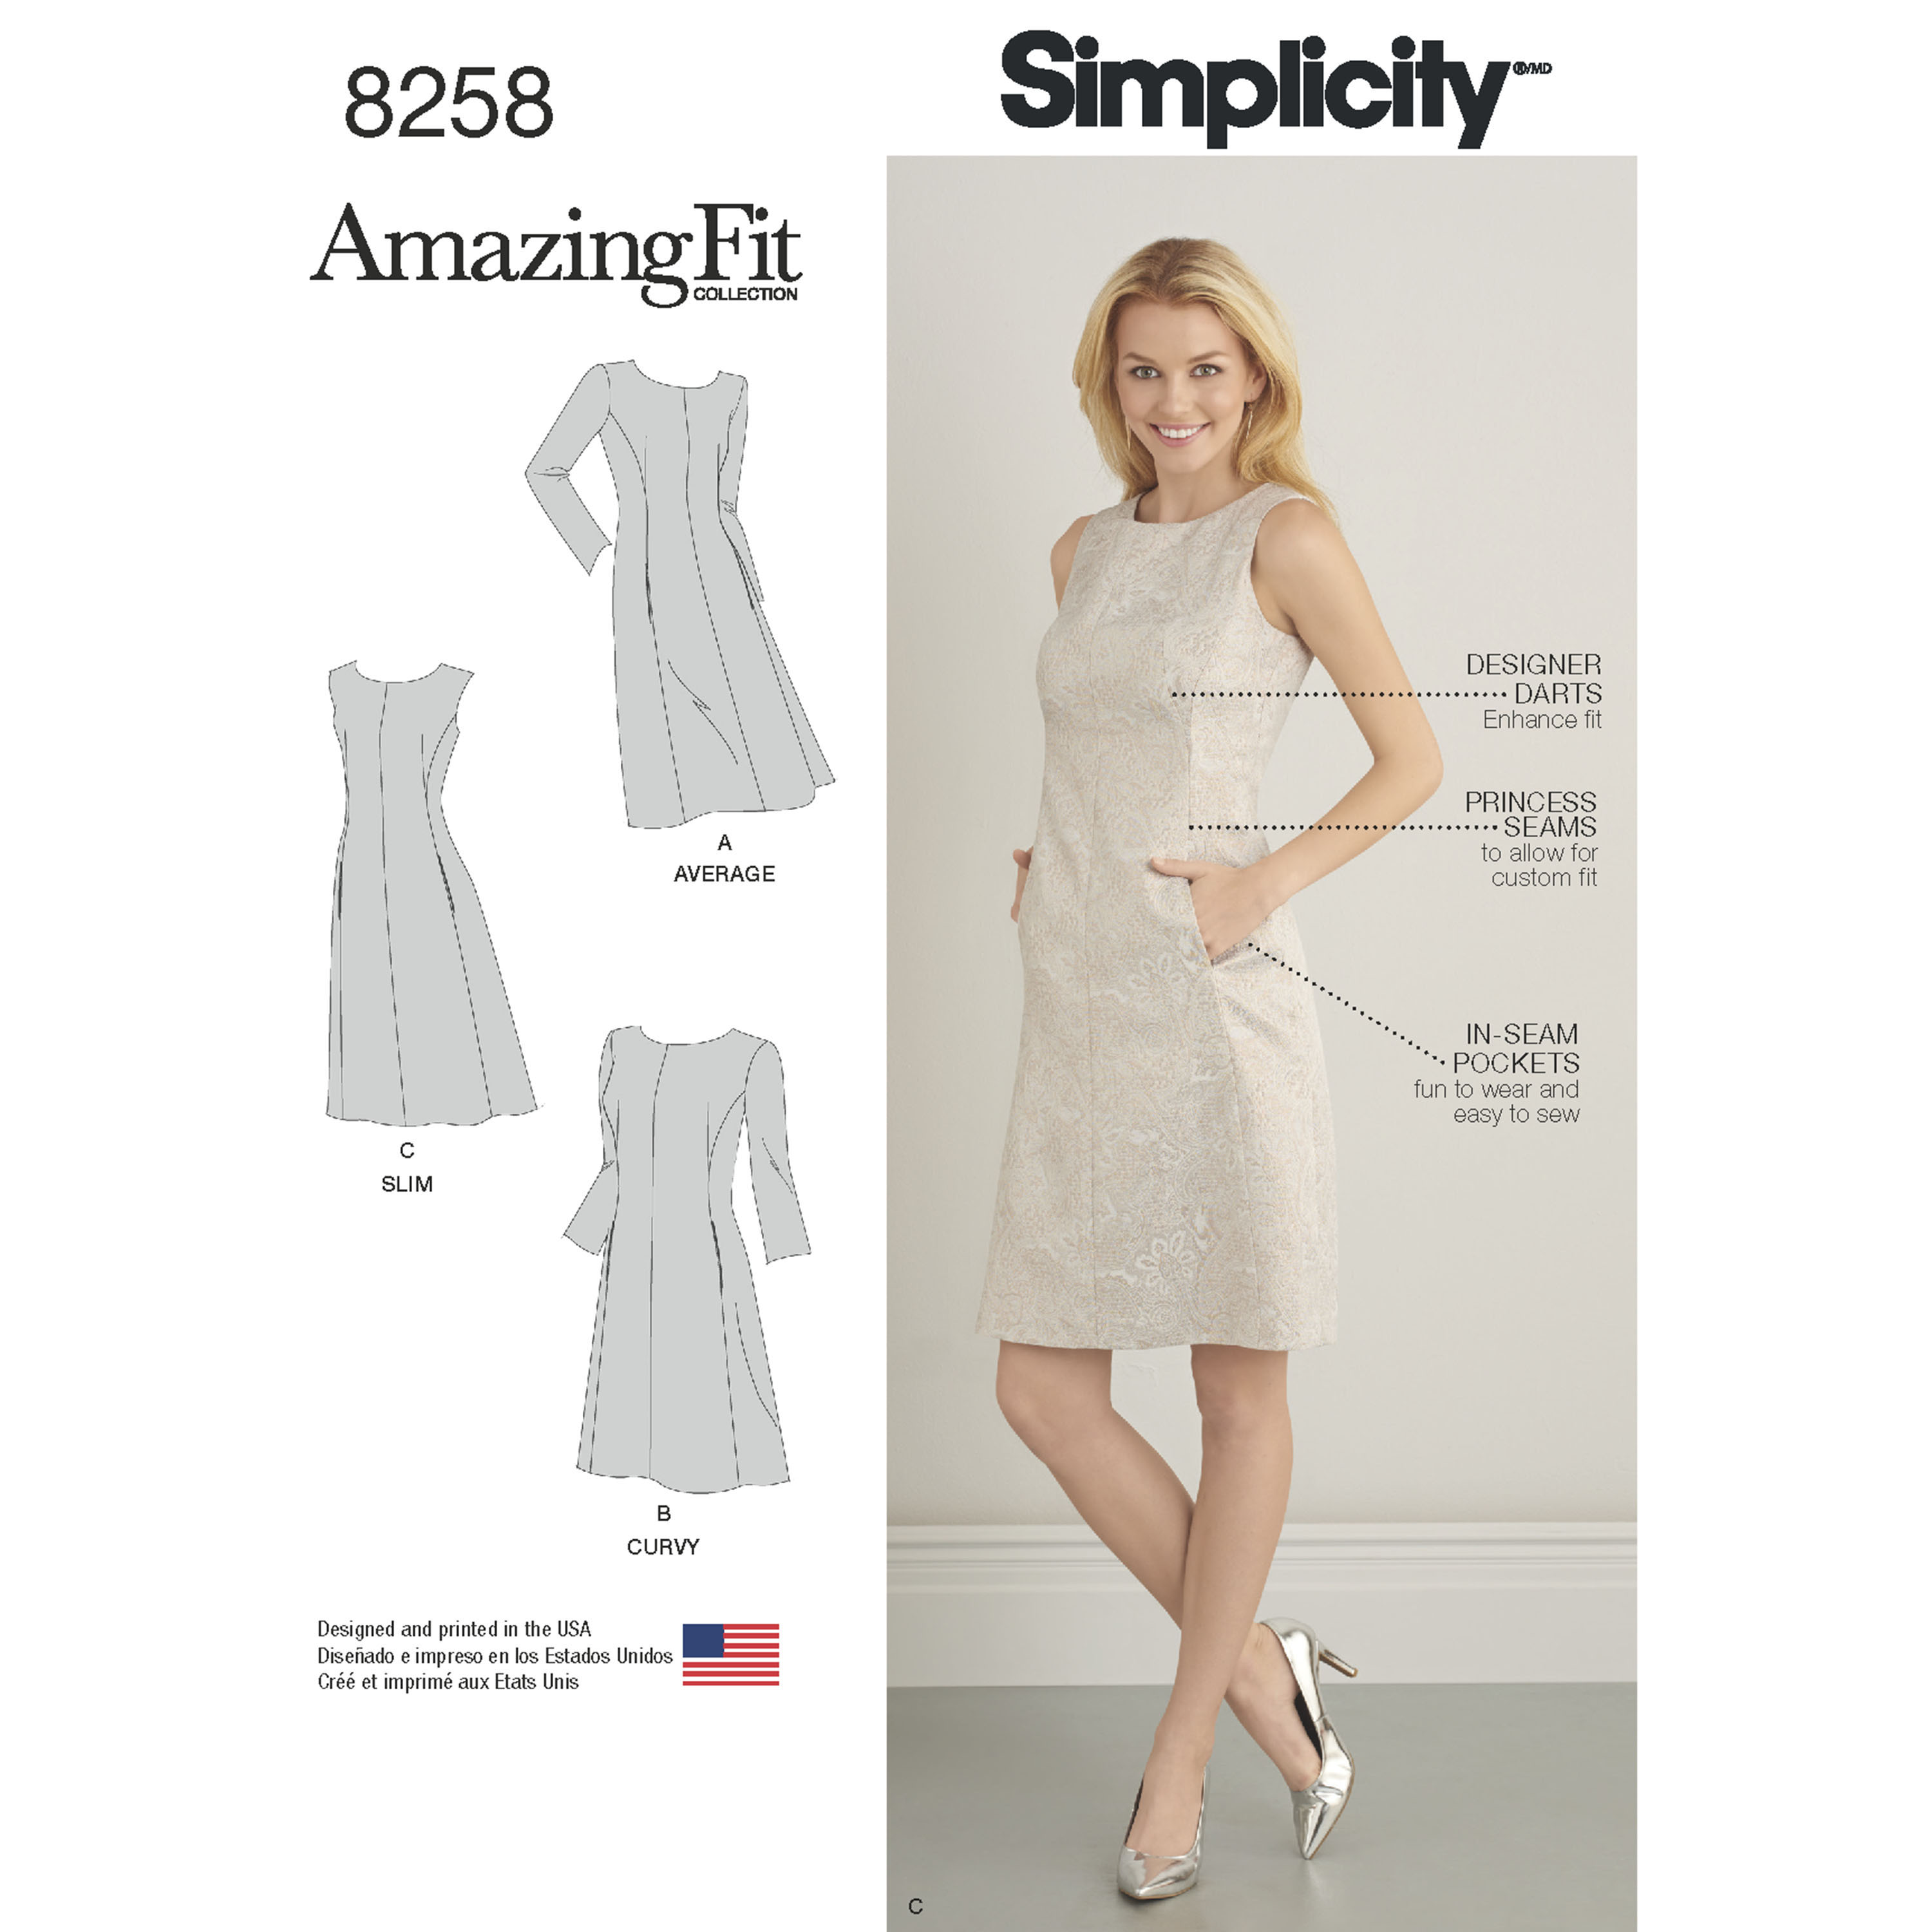 Simplicity Simplicity Pattern 8258 Misses\' and Plus Size Amazing Fit ...